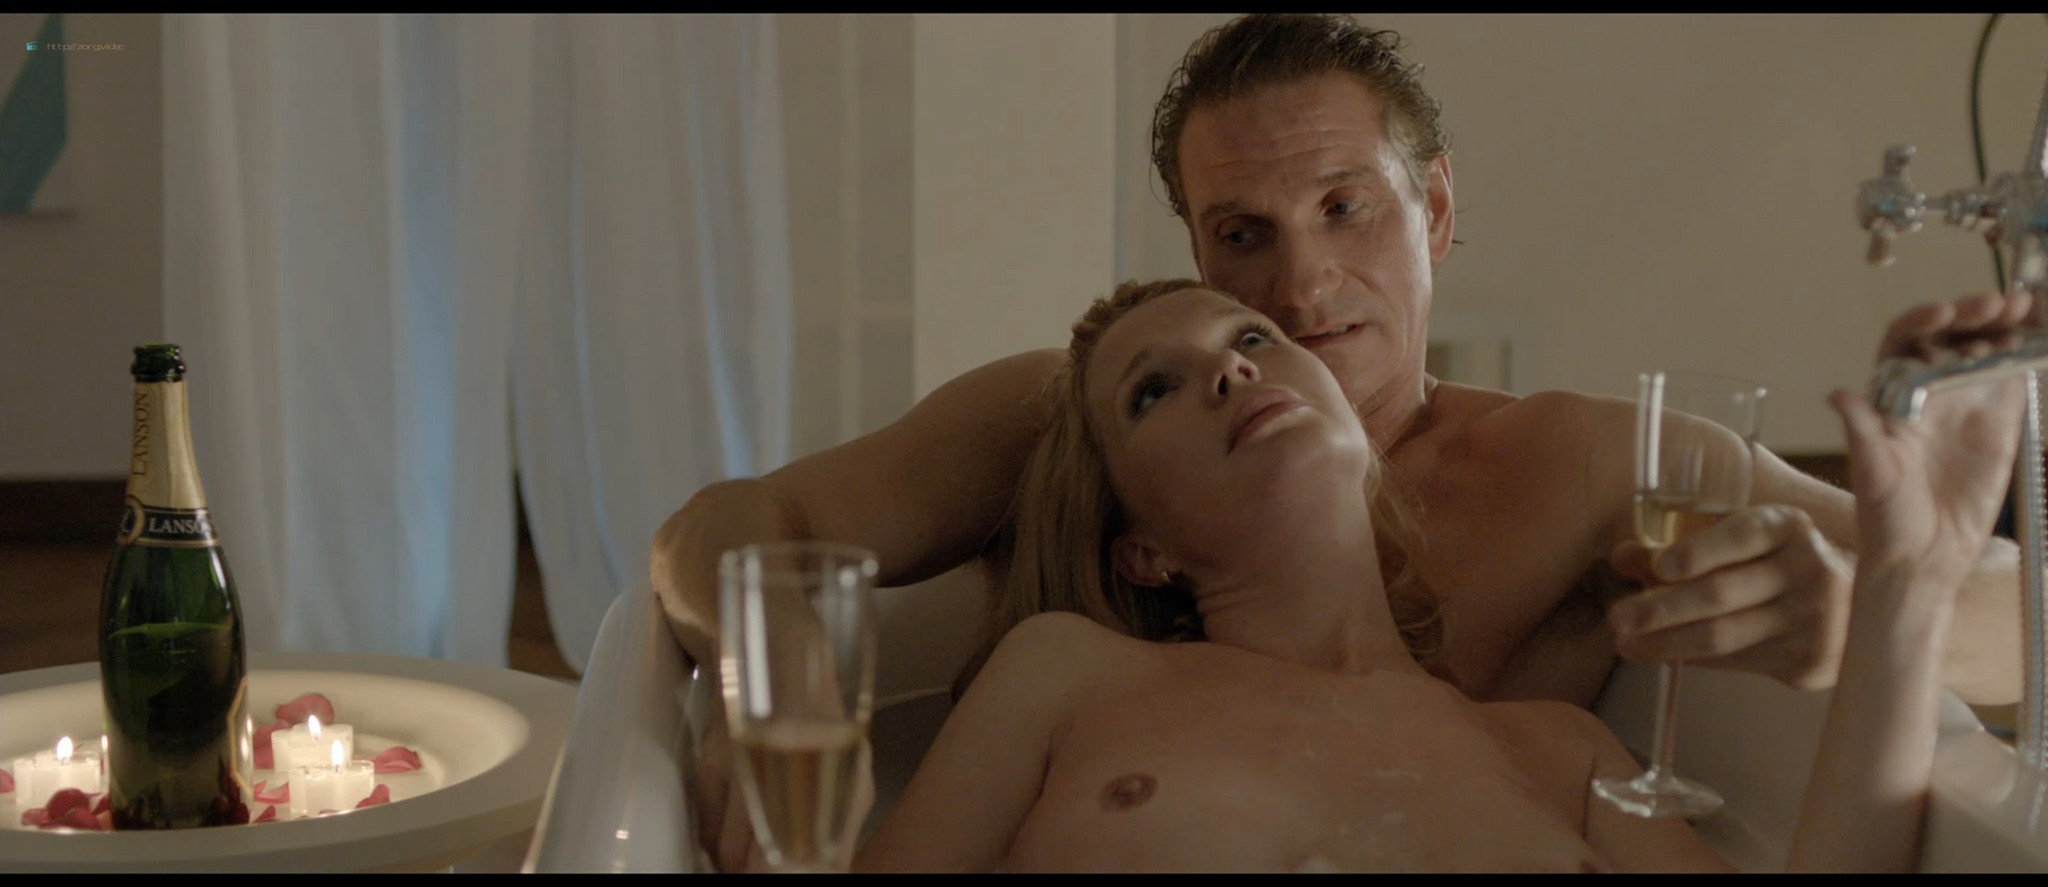 Tjitske Reidinga nude and some sex - De verbouwing (2012) HD 1080p BluRay (4)